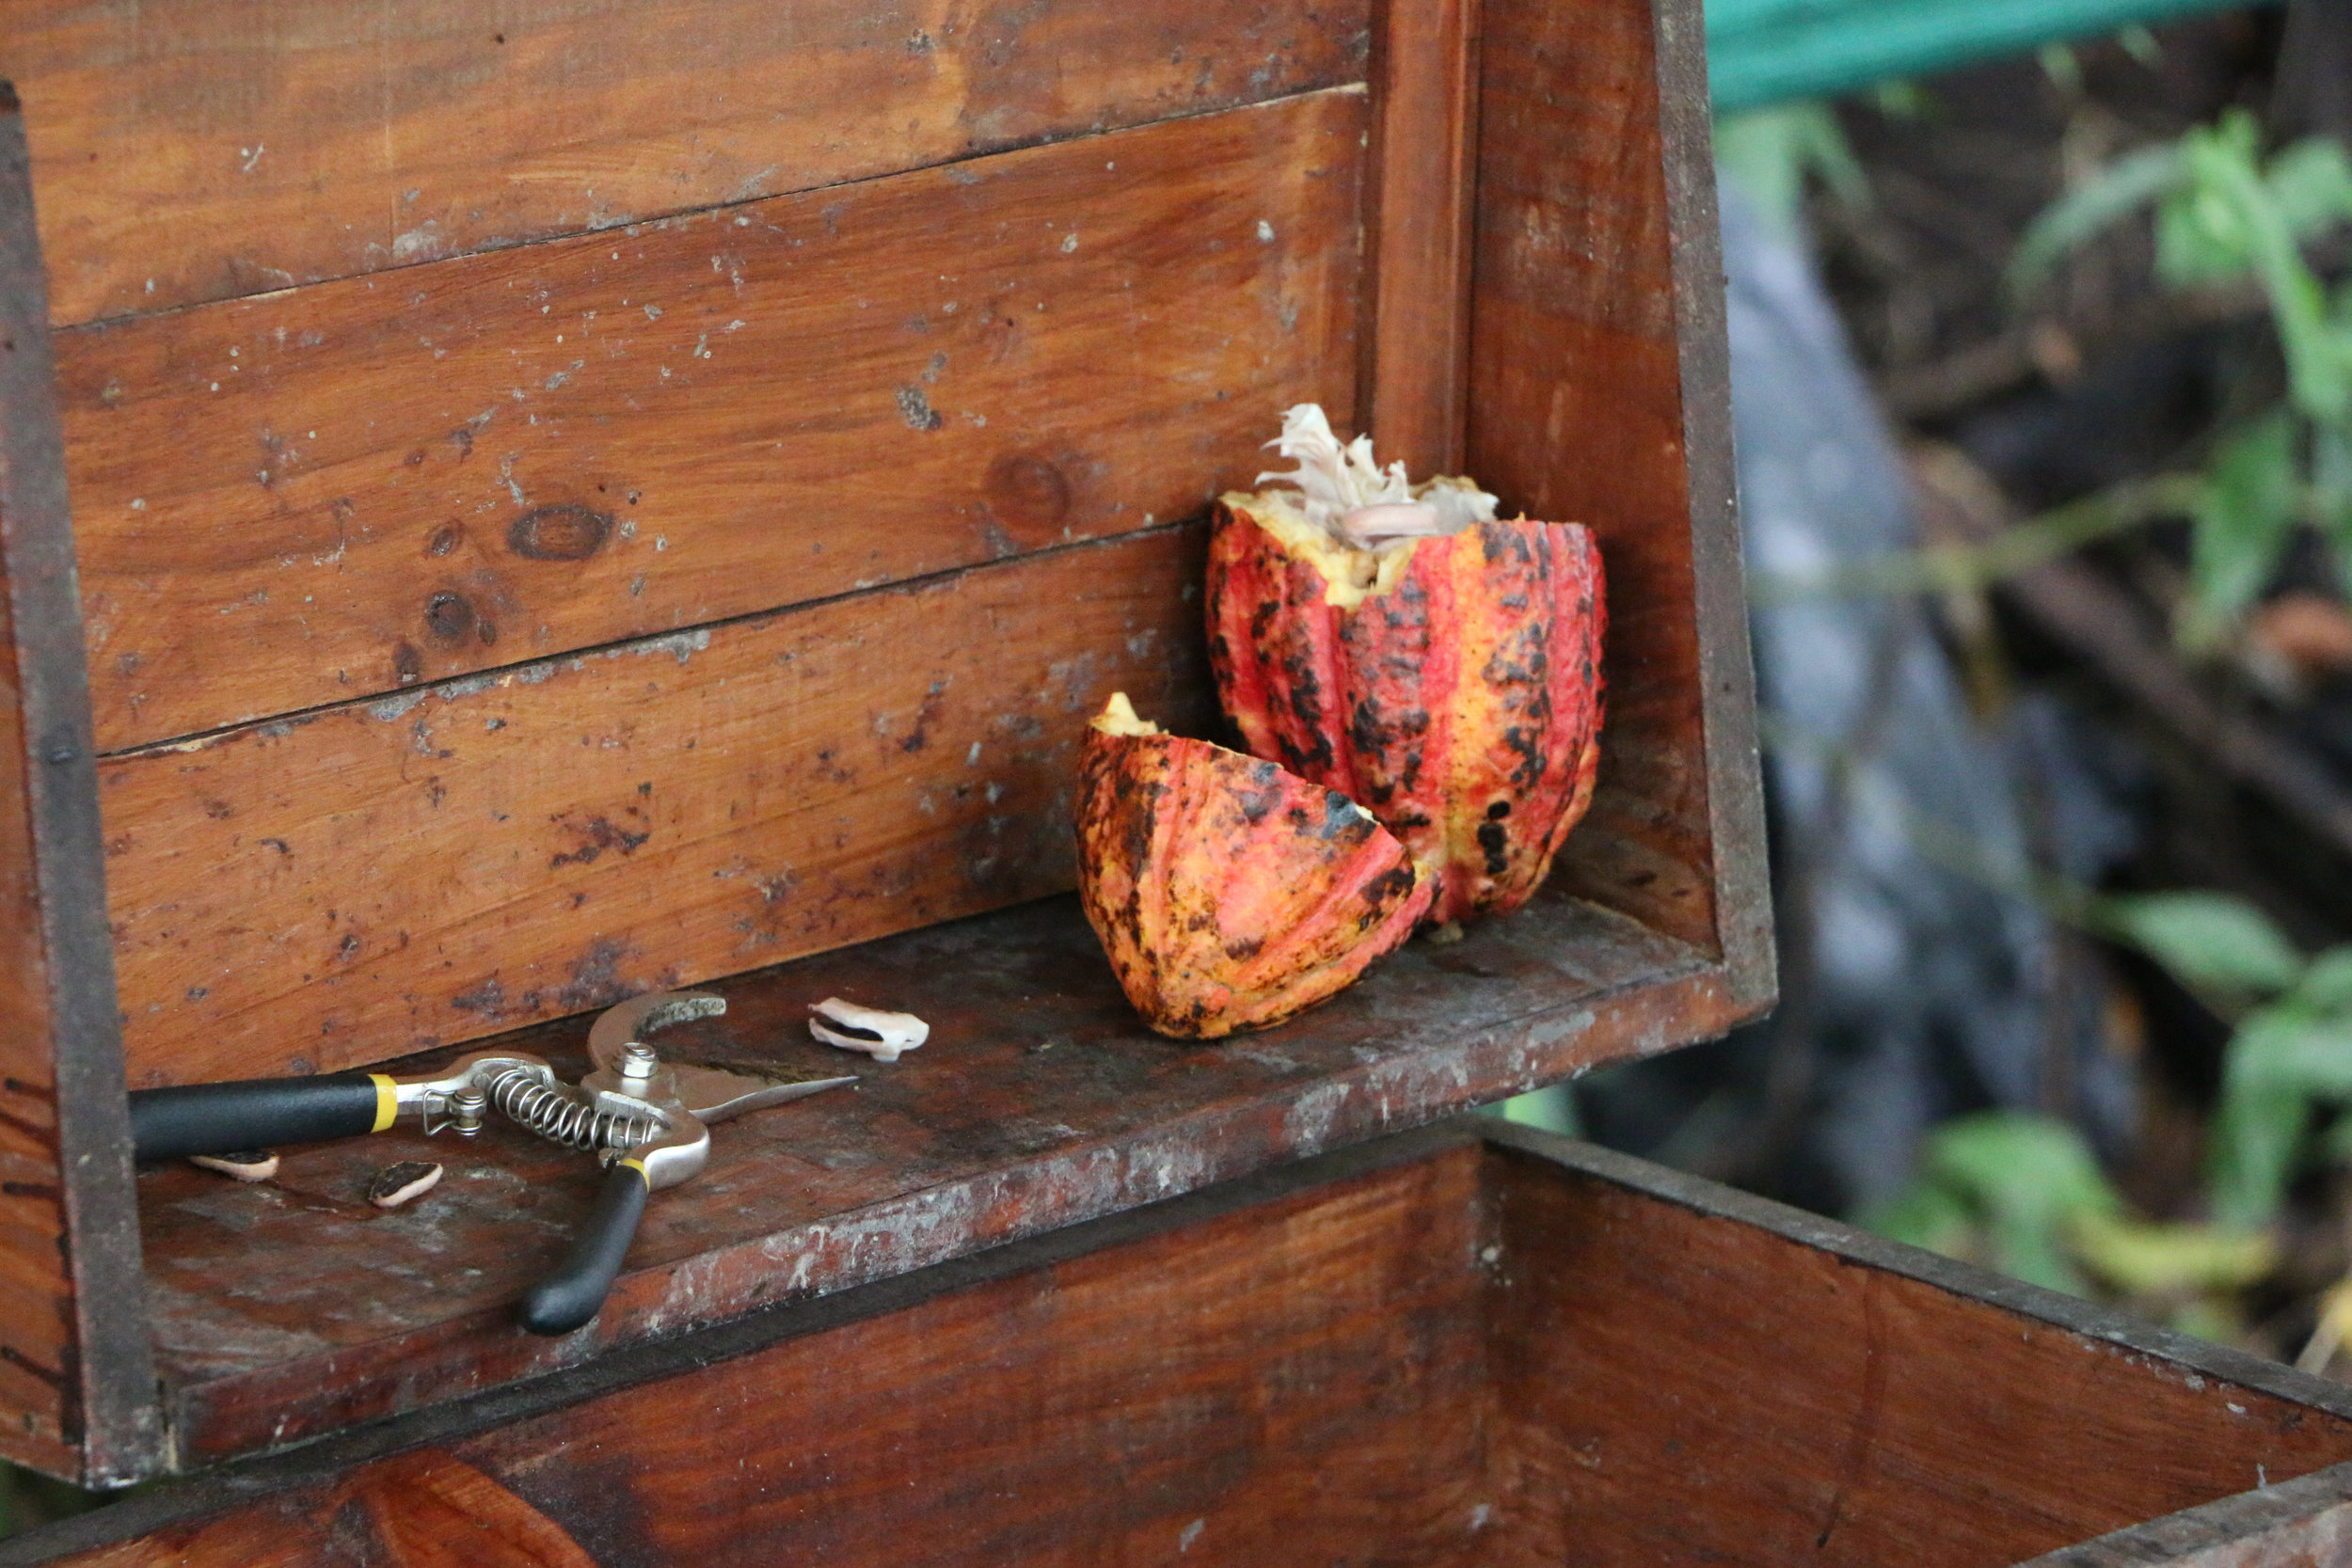 The raw fruit, cracked open before the seeds are harvested prior to fermentation.